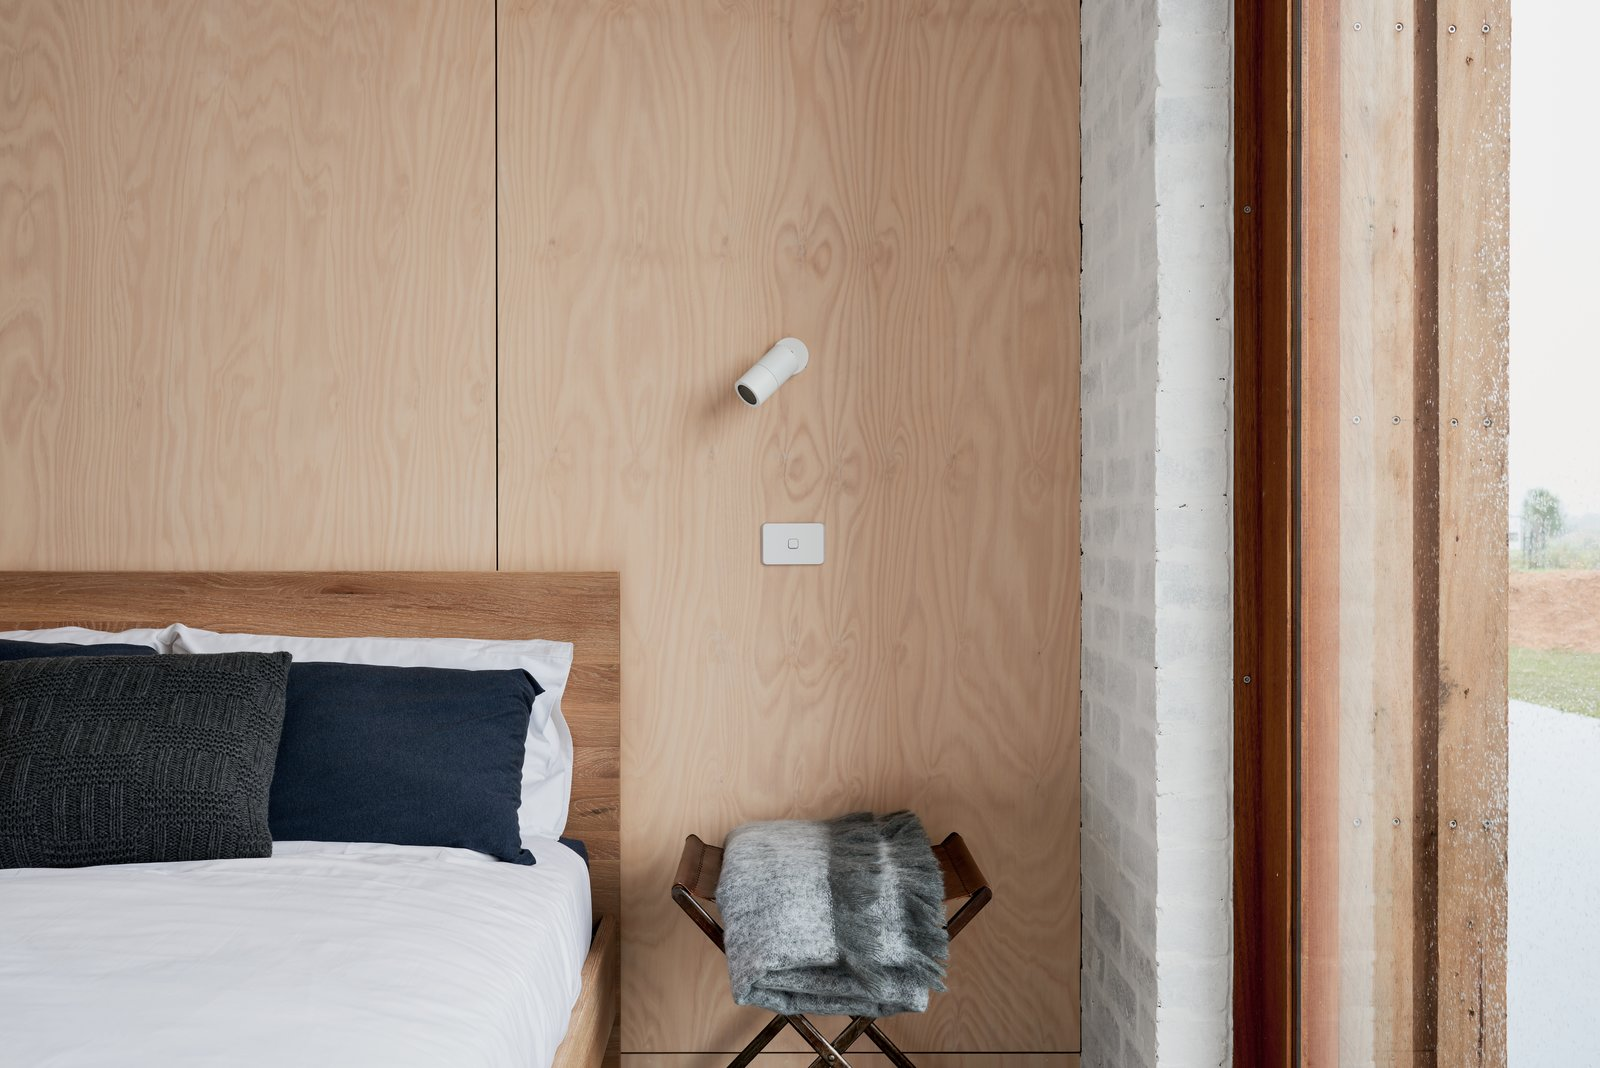 Bedroom, Bed, Chair, Ceiling Lighting, Night Stands, Wall Lighting, Accent Lighting, and Concrete Floor Main bedroom featuring recycled brick walls and sustainable, non-toxic plywood panelling. Sustainable timber bed by Totem Road.  The 10 Star Home by The Sociable Weaver